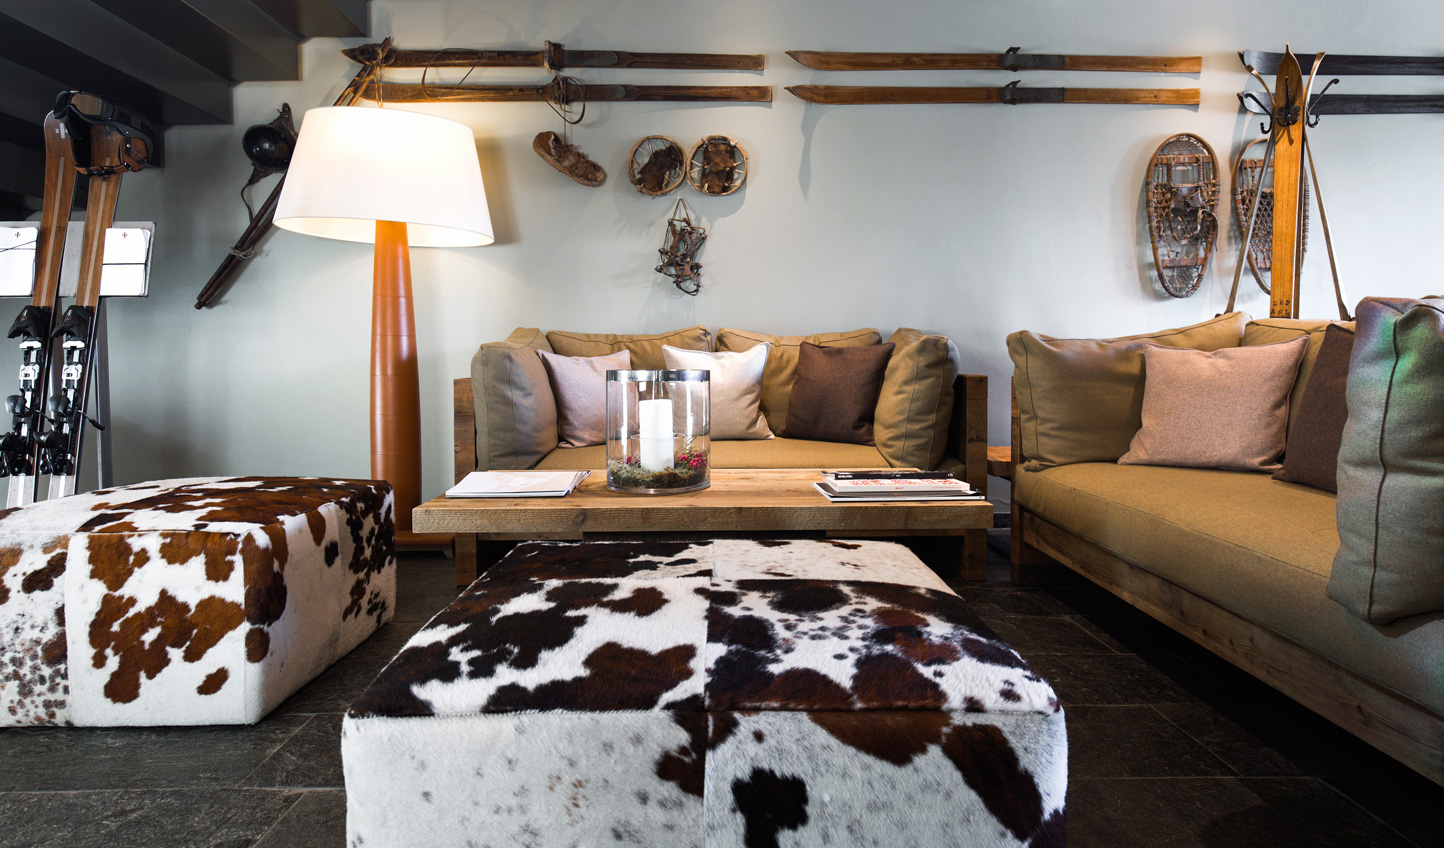 Vintage pieces meet modern design to give quintessential Alpine charm